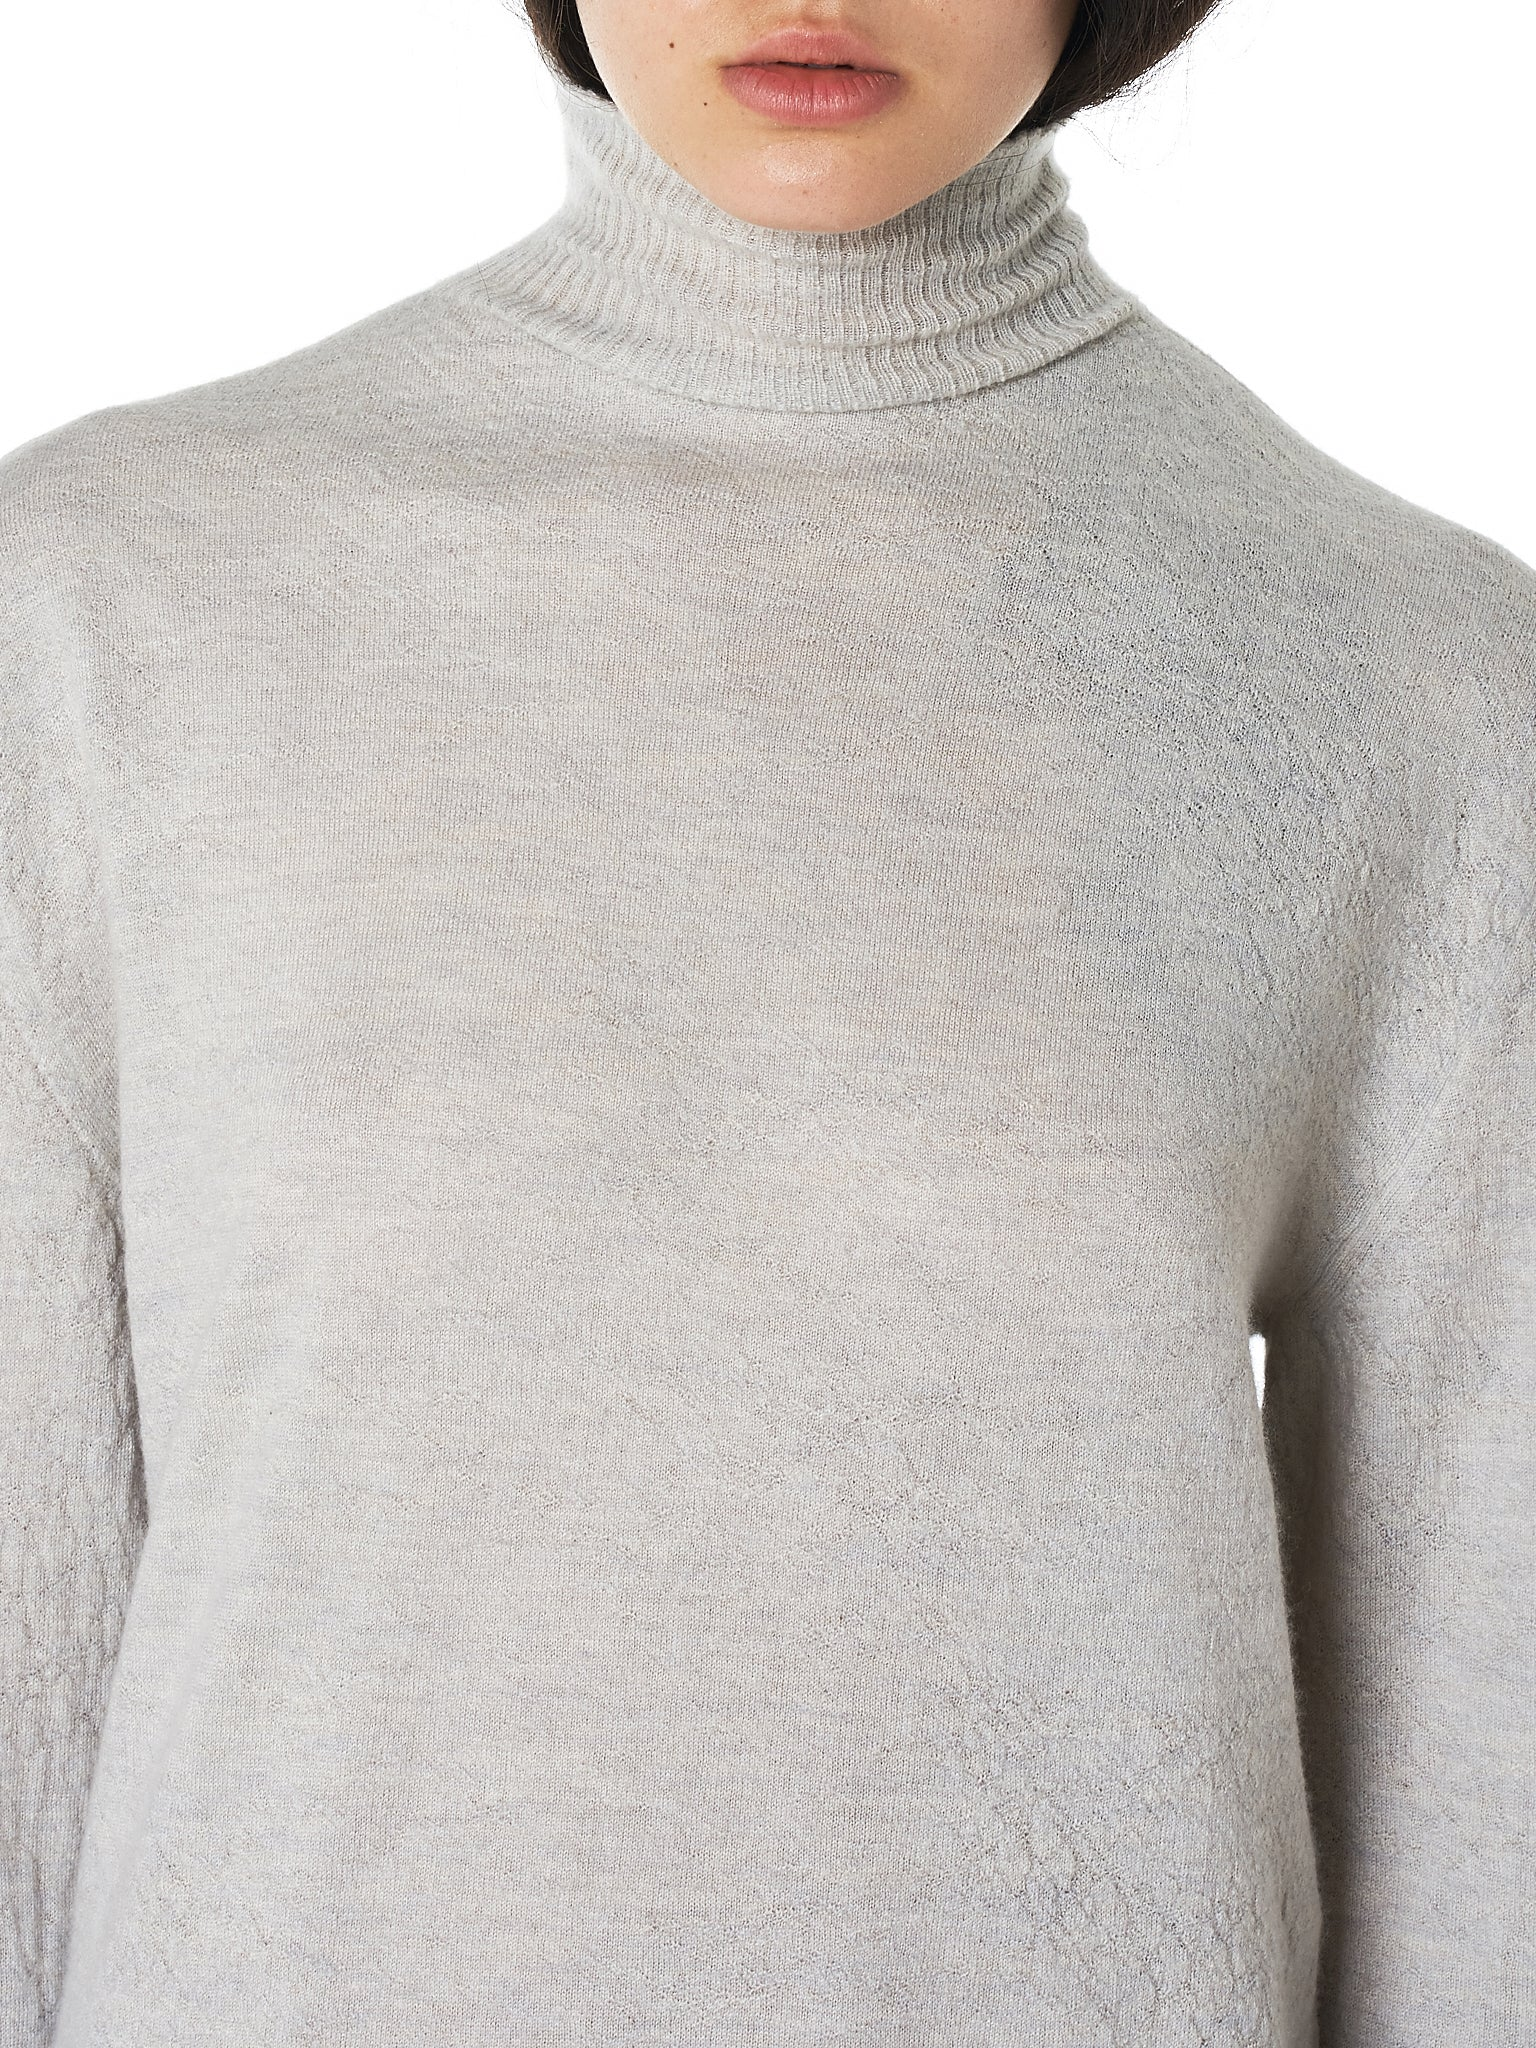 Unravel Turtleneck - Hlorenzo Detail 1